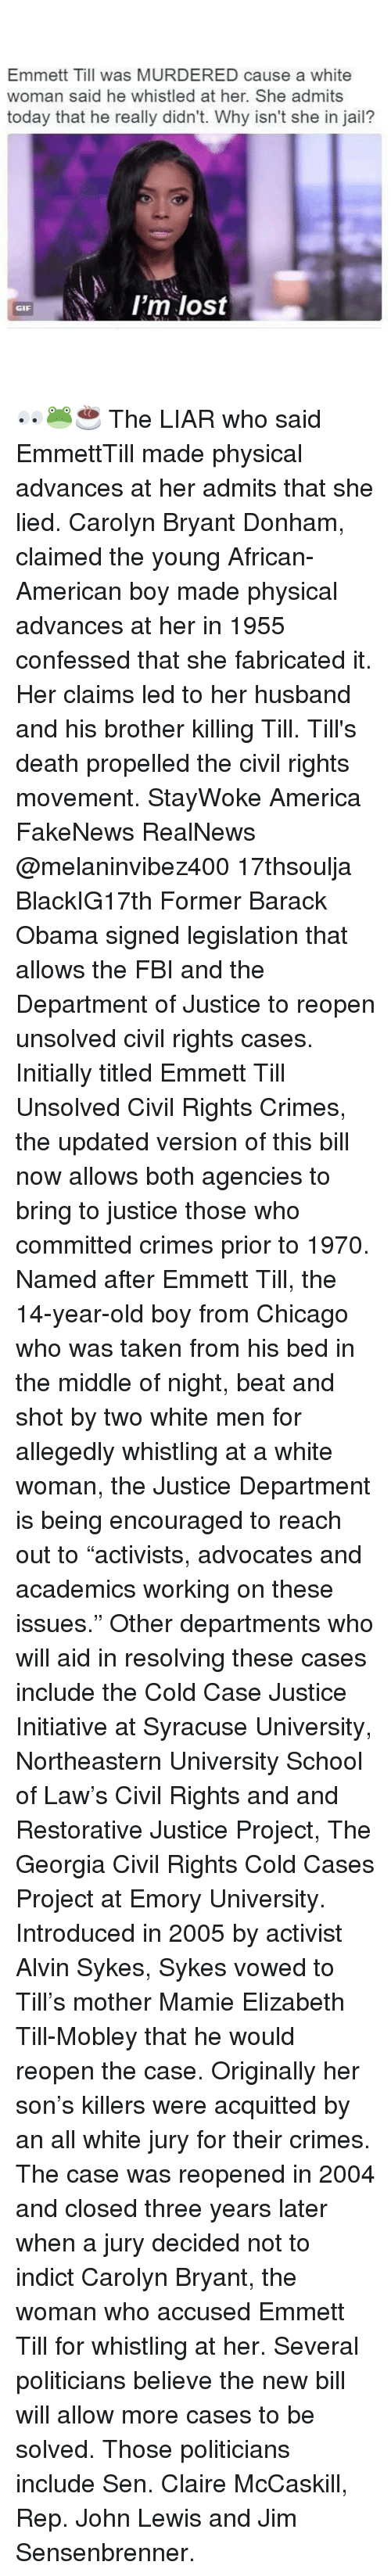 "Lewy: Emmett Till was MURDERED cause a white  woman said he whistled at her. She admits  today that he really didn't. Why isn't she in jail?  I'm lost  GIF 👀🐸☕️ The LIAR who said EmmettTill made physical advances at her admits that she lied. Carolyn Bryant Donham, claimed the young African-American boy made physical advances at her in 1955 confessed that she fabricated it. Her claims led to her husband and his brother killing Till. Till's death propelled the civil rights movement. StayWoke America FakeNews RealNews @melaninvibez400 17thsoulja BlackIG17th Former Barack Obama signed legislation that allows the FBI and the Department of Justice to reopen unsolved civil rights cases. Initially titled Emmett Till Unsolved Civil Rights Crimes, the updated version of this bill now allows both agencies to bring to justice those who committed crimes prior to 1970. Named after Emmett Till, the 14-year-old boy from Chicago who was taken from his bed in the middle of night, beat and shot by two white men for allegedly whistling at a white woman, the Justice Department is being encouraged to reach out to ""activists, advocates and academics working on these issues."" Other departments who will aid in resolving these cases include the Cold Case Justice Initiative at Syracuse University, Northeastern University School of Law's Civil Rights and and Restorative Justice Project, The Georgia Civil Rights Cold Cases Project at Emory University. Introduced in 2005 by activist Alvin Sykes, Sykes vowed to Till's mother Mamie Elizabeth Till-Mobley that he would reopen the case. Originally her son's killers were acquitted by an all white jury for their crimes. The case was reopened in 2004 and closed three years later when a jury decided not to indict Carolyn Bryant, the woman who accused Emmett Till for whistling at her. Several politicians believe the new bill will allow more cases to be solved. Those politicians include Sen. Claire McCaskill, Rep. John Lewis and Jim Sensenbrenner."